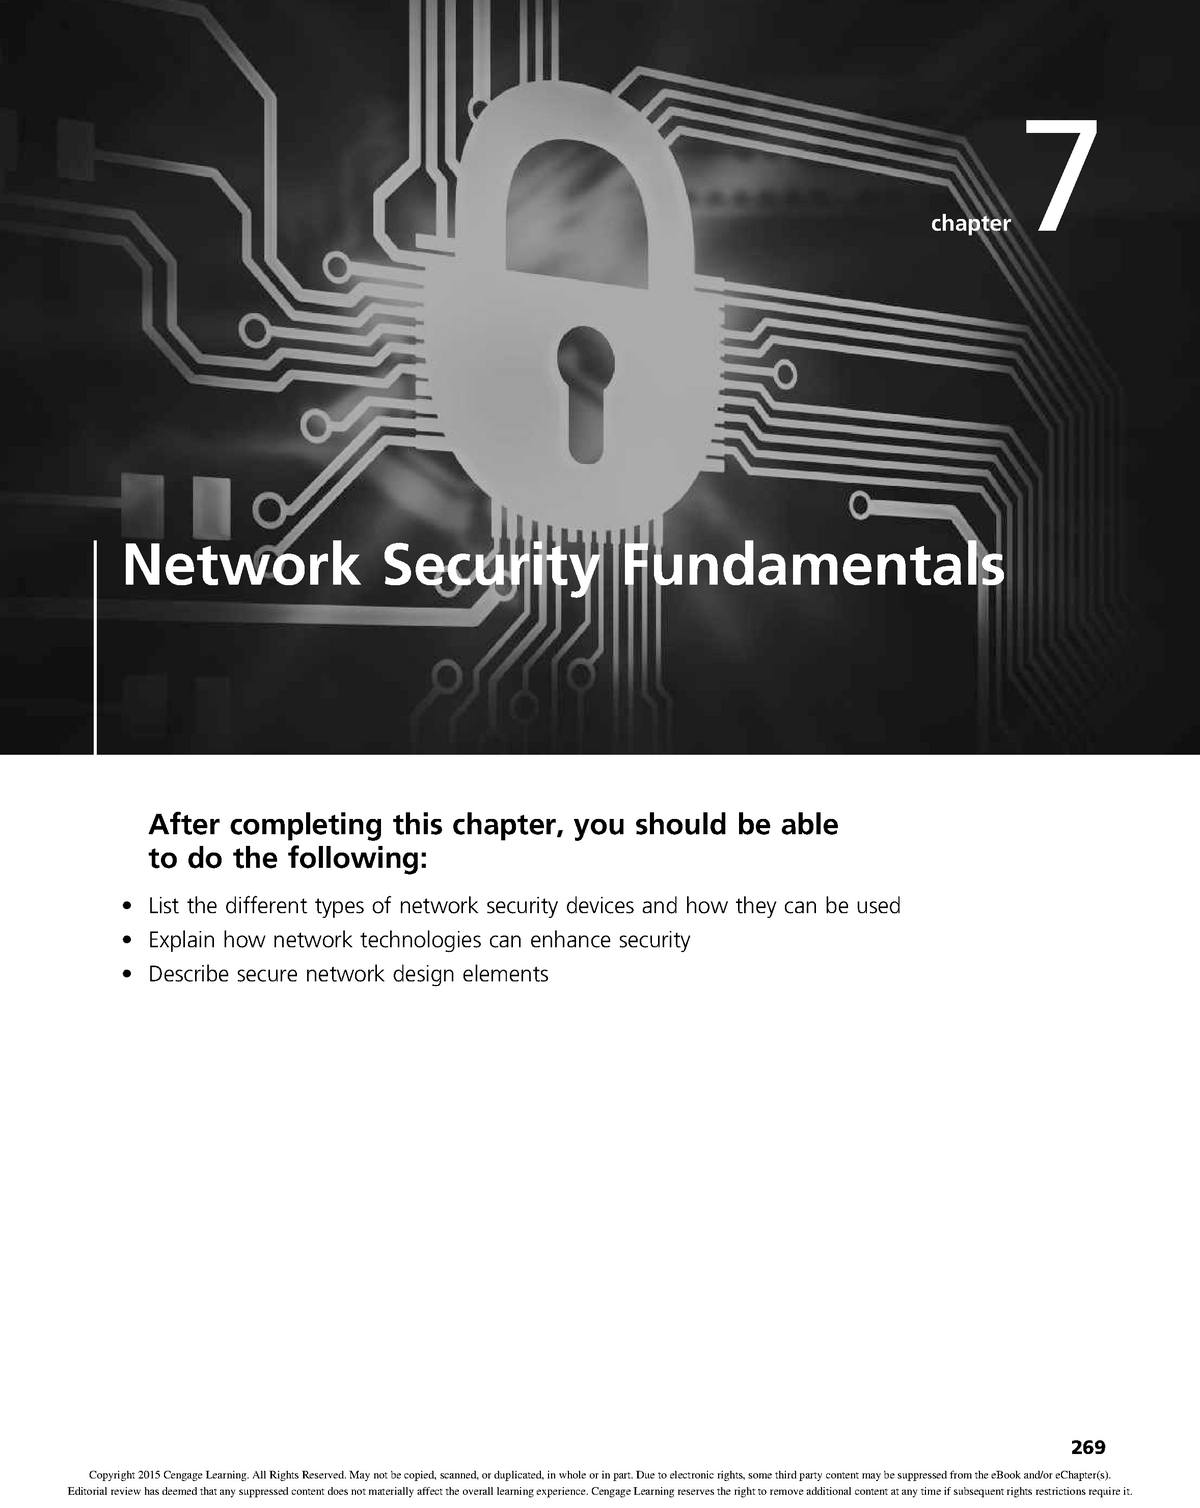 Chapter 07 Network Security Fundamentals - TABL2059 - UNSW